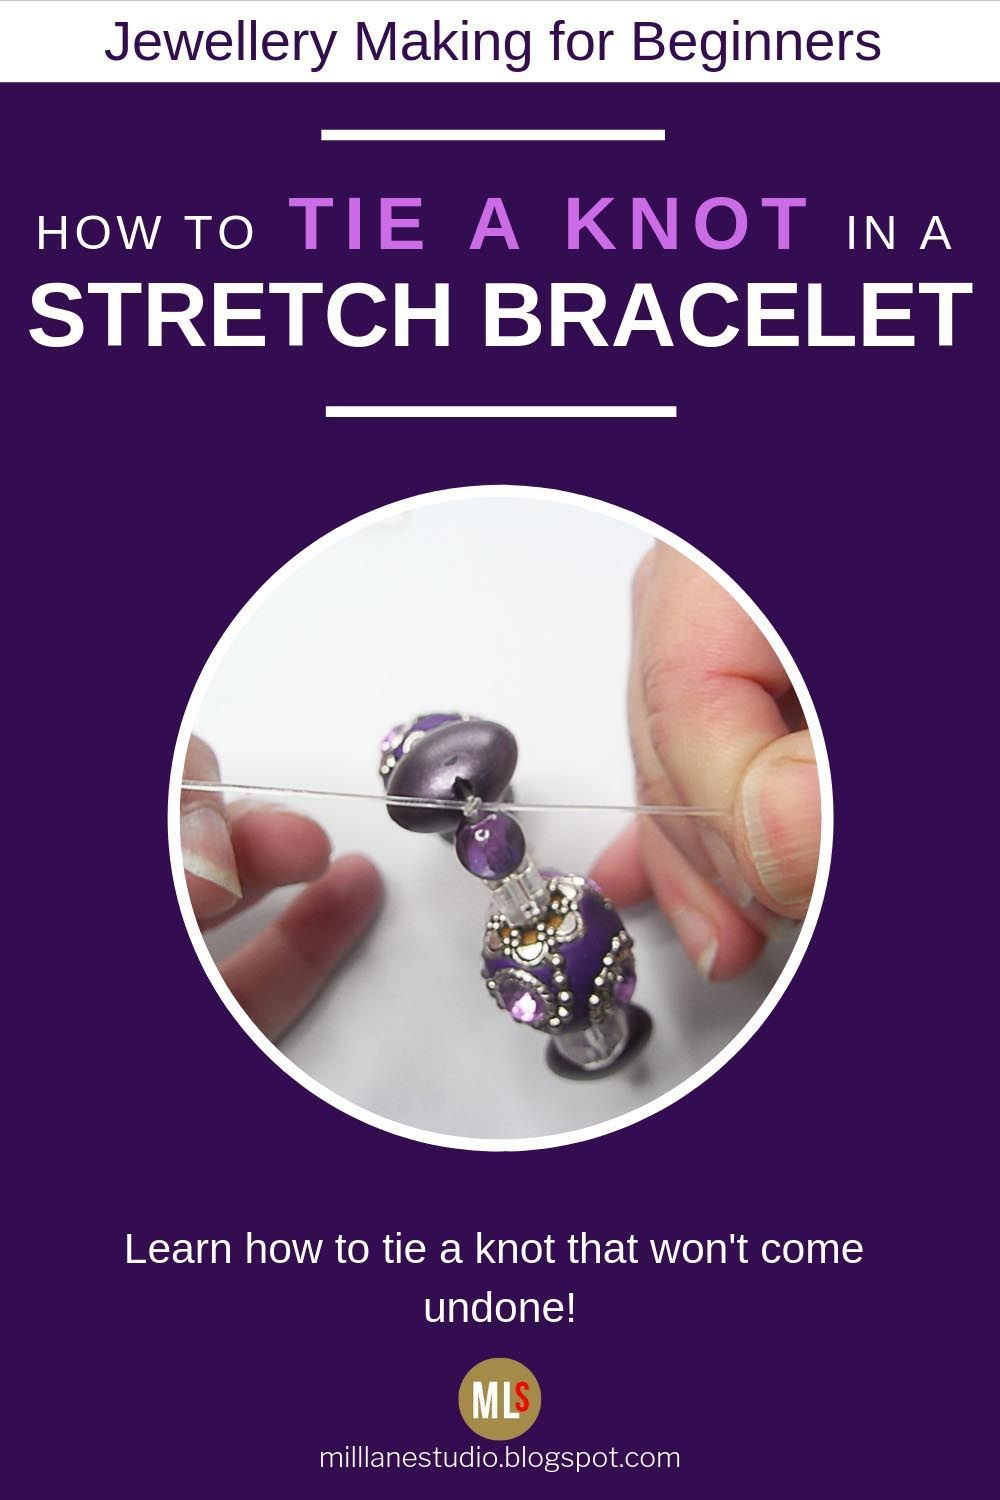 Kashmiri Stretch Bracelet is part of Jewelry making, Stretch bracelets, Stretch bracelets diy, Making jewelry for beginners, Professional jewelry, Beaded bracelets diy - Beginner's jewellery making project  string a Kashmiri bead bracelet on Stretch Magic beading elastic and learn how to tie a secure knot